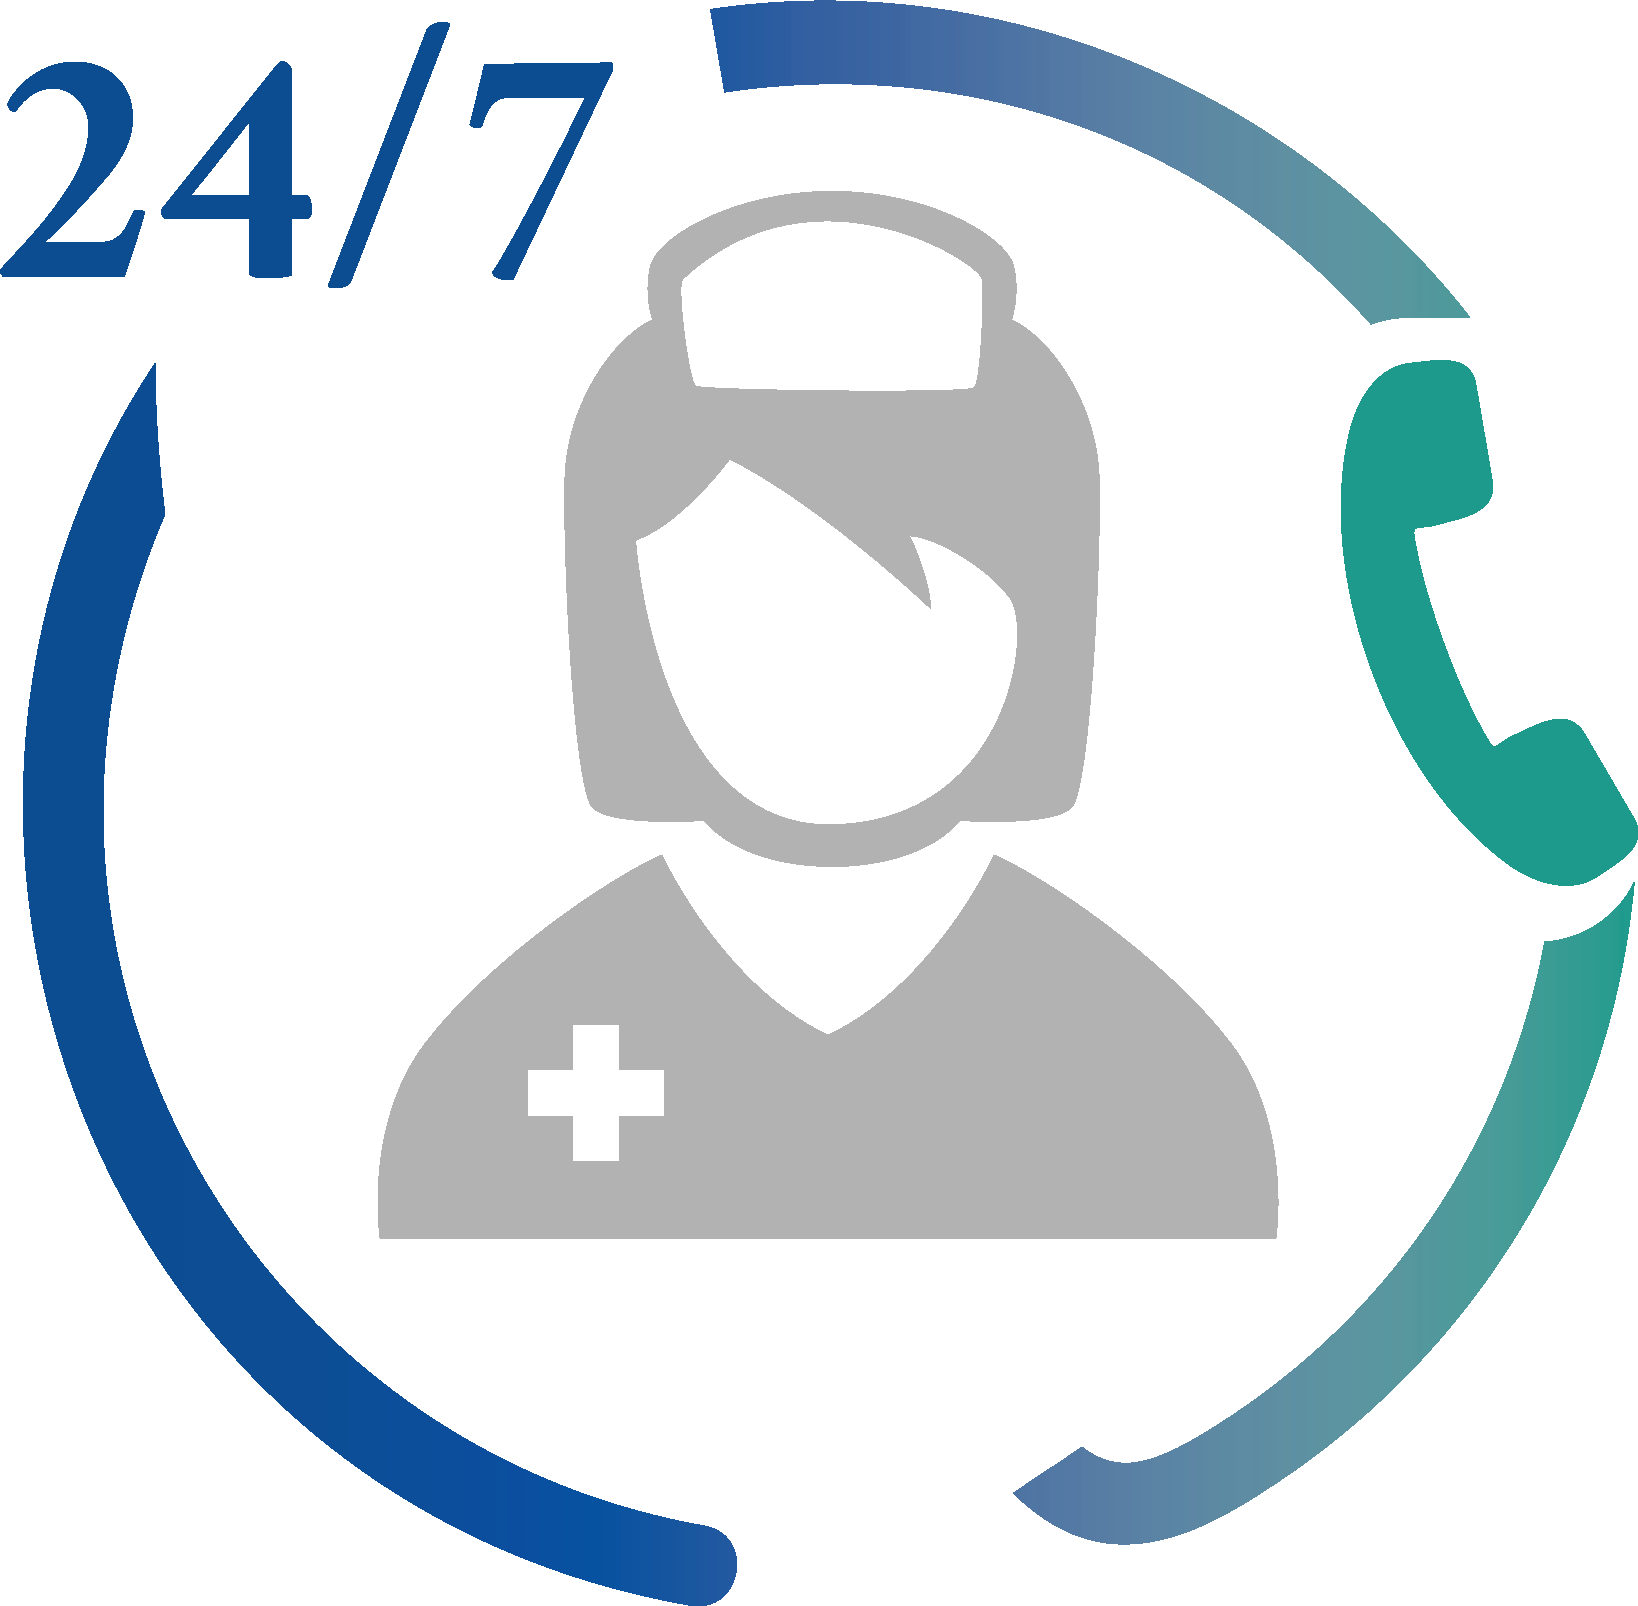 24/7 Telephonic Nurse Triagethis is the first nurse you should call after an injury at work